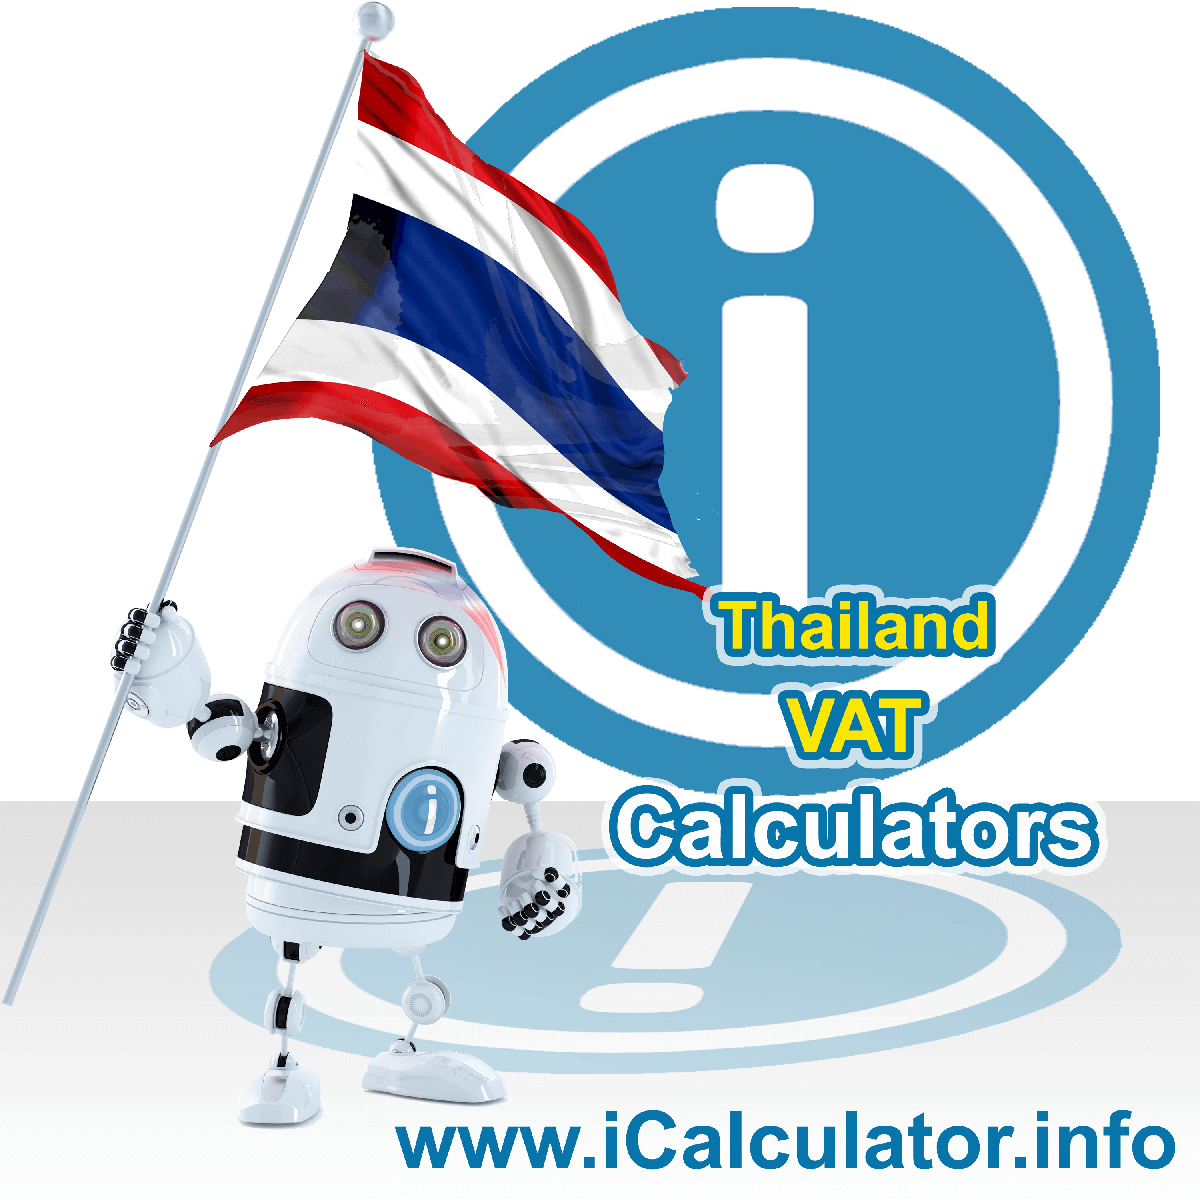 Thailand VAT Calculator. This image shows the Thailand flag and information relating to the VAT formula used for calculating Value Added Tax in Thailand using the Thailand VAT Calculator in 2020